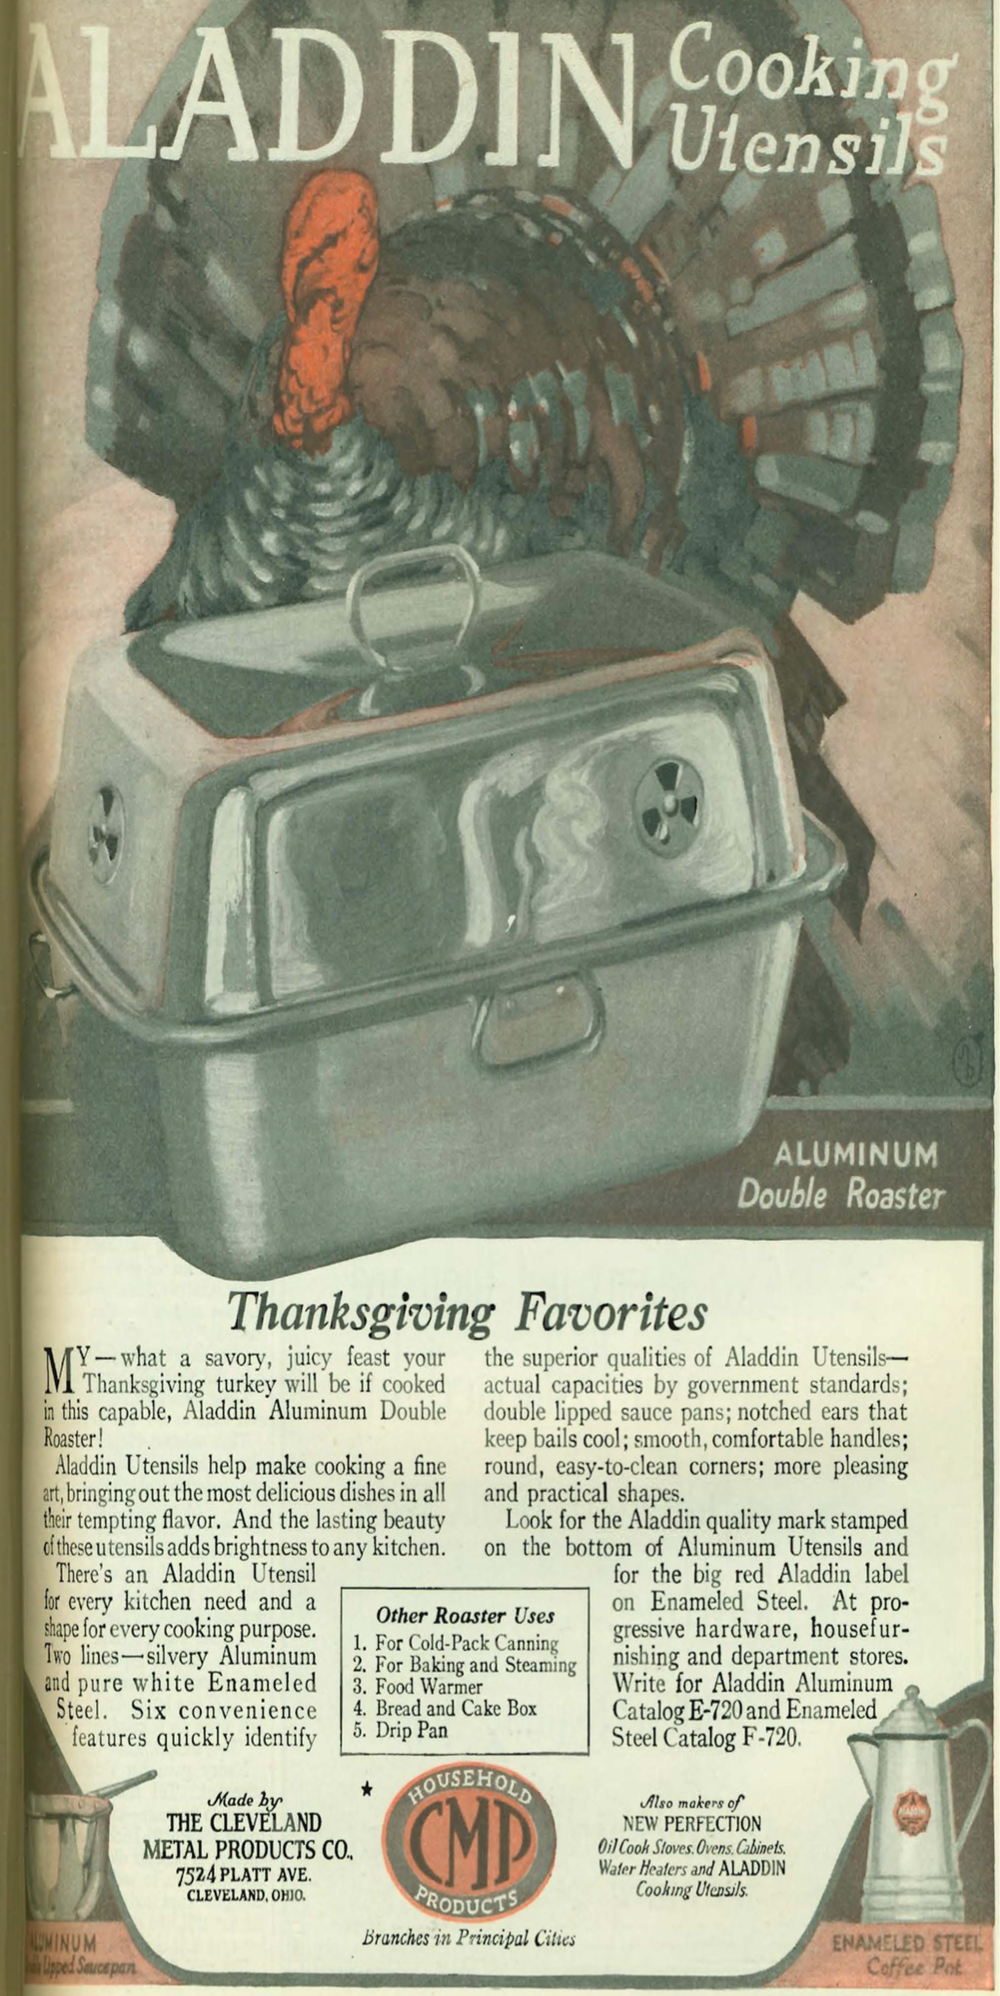 Aladdin Cooking Utensils advertises its double roaster in a 1920 issue of Good Housekeeping.